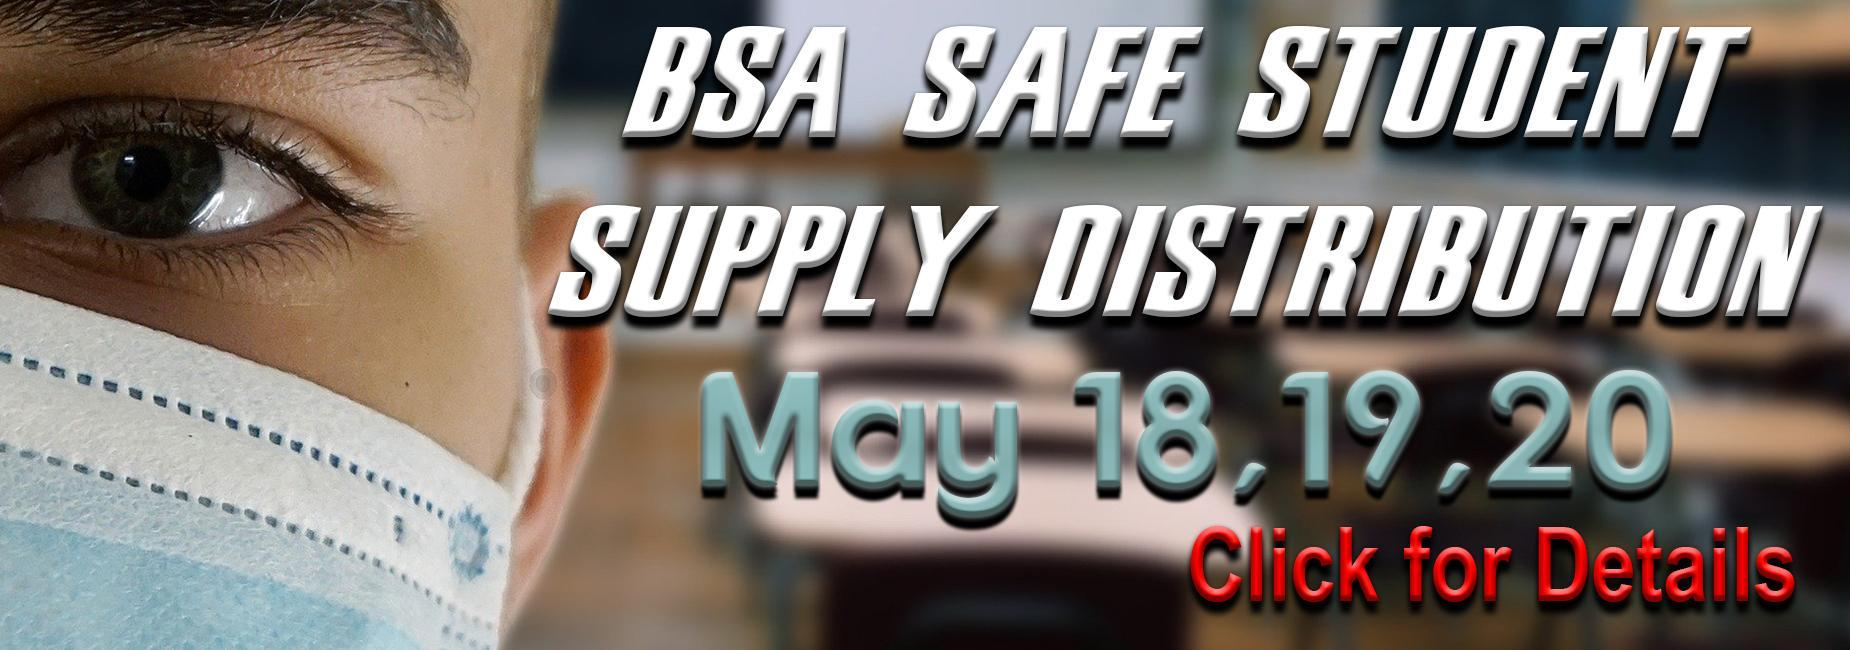 safe student supply distribution May 18, 19, 20 click for details